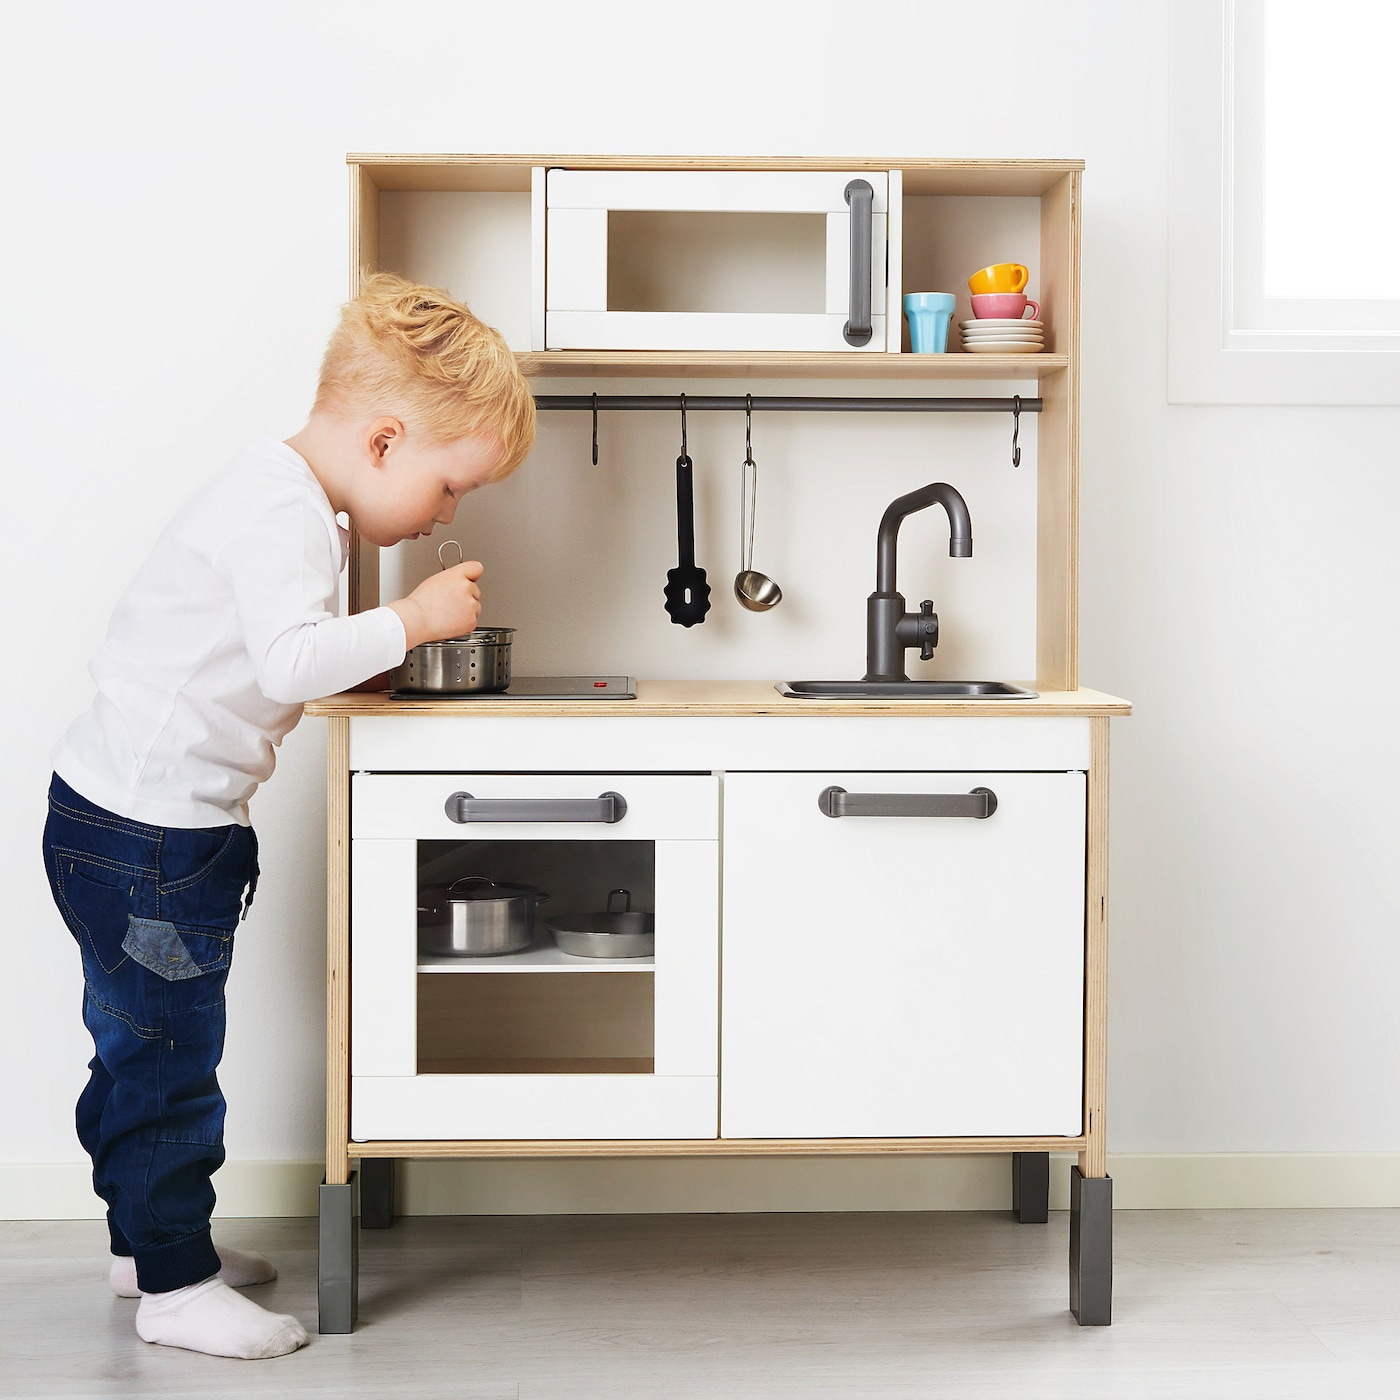 "DUKTIG Play kitchen, birch, 7 7/7x7 7/7x72 7/7"" - IKEA"